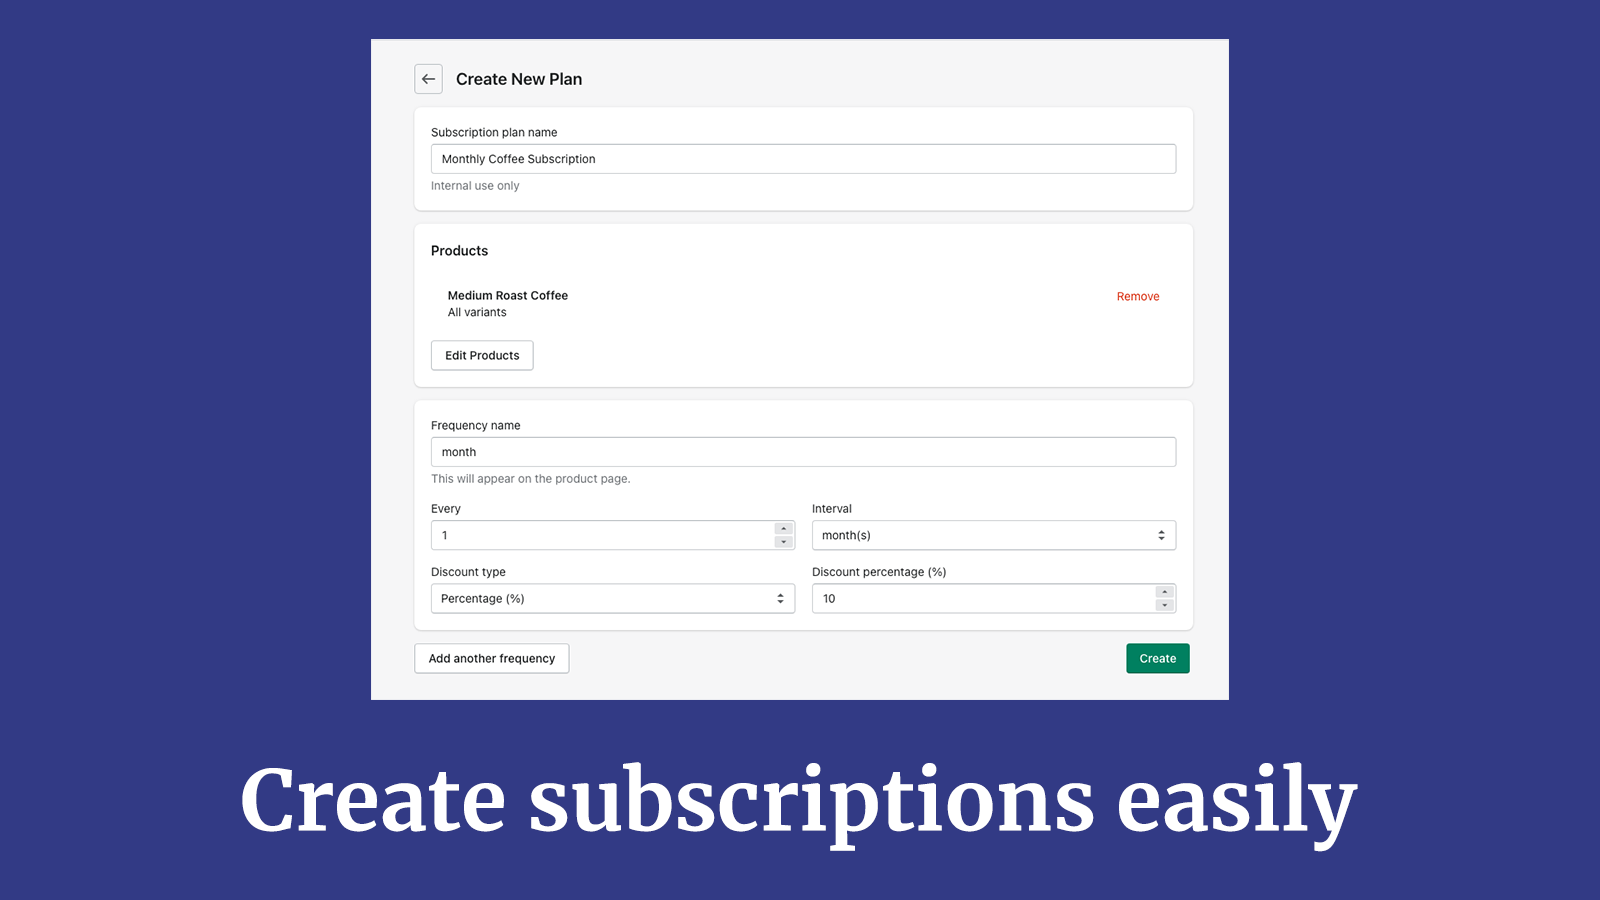 Create custom subscription plans in just a few clicks.